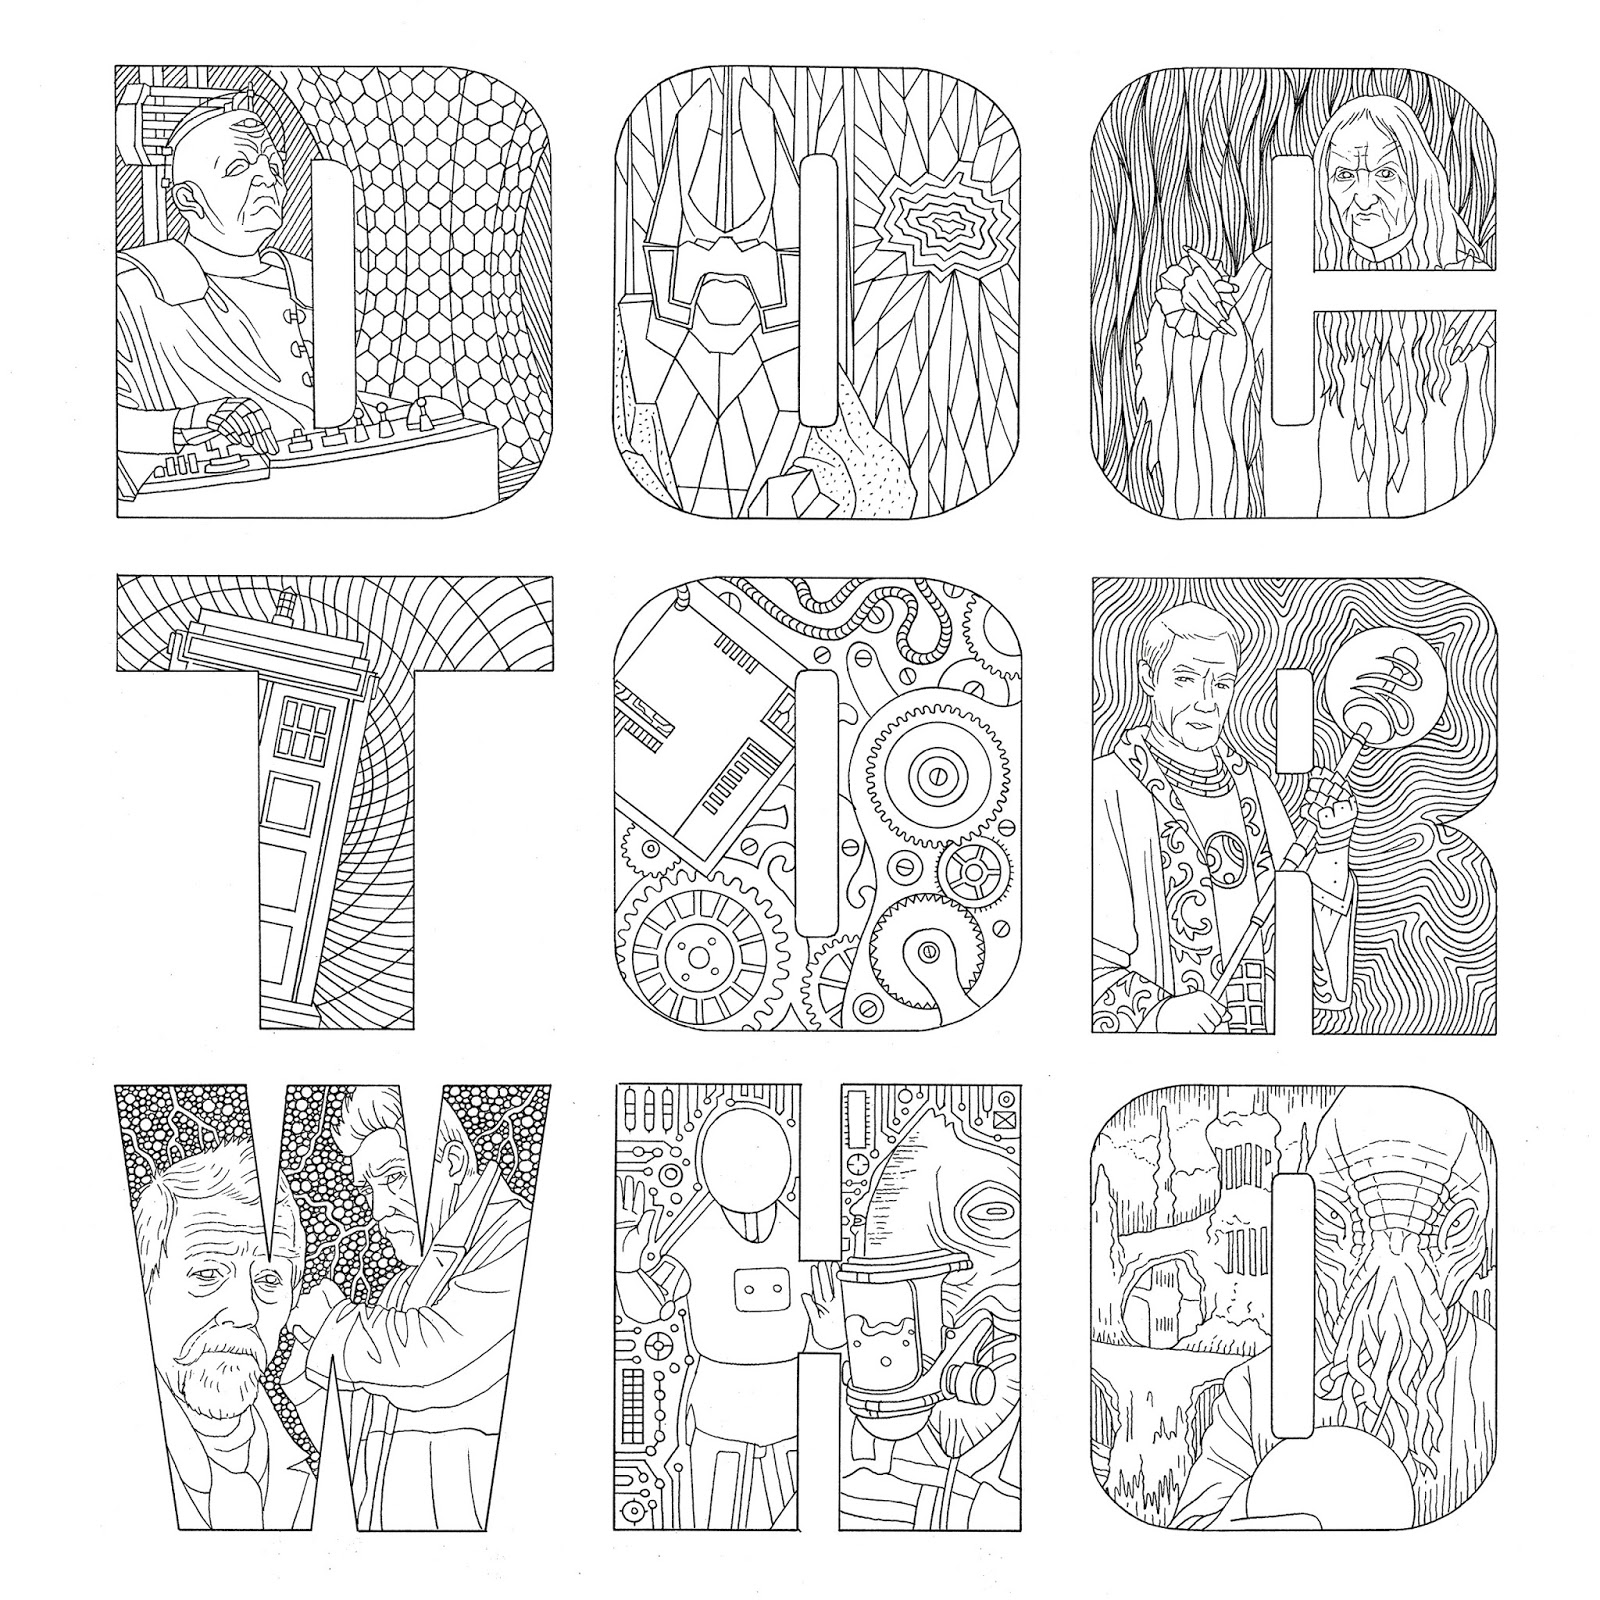 doctor who pictures to colour doctor who wibbly wobbly timey wimey coloring pages doctor pictures who to colour